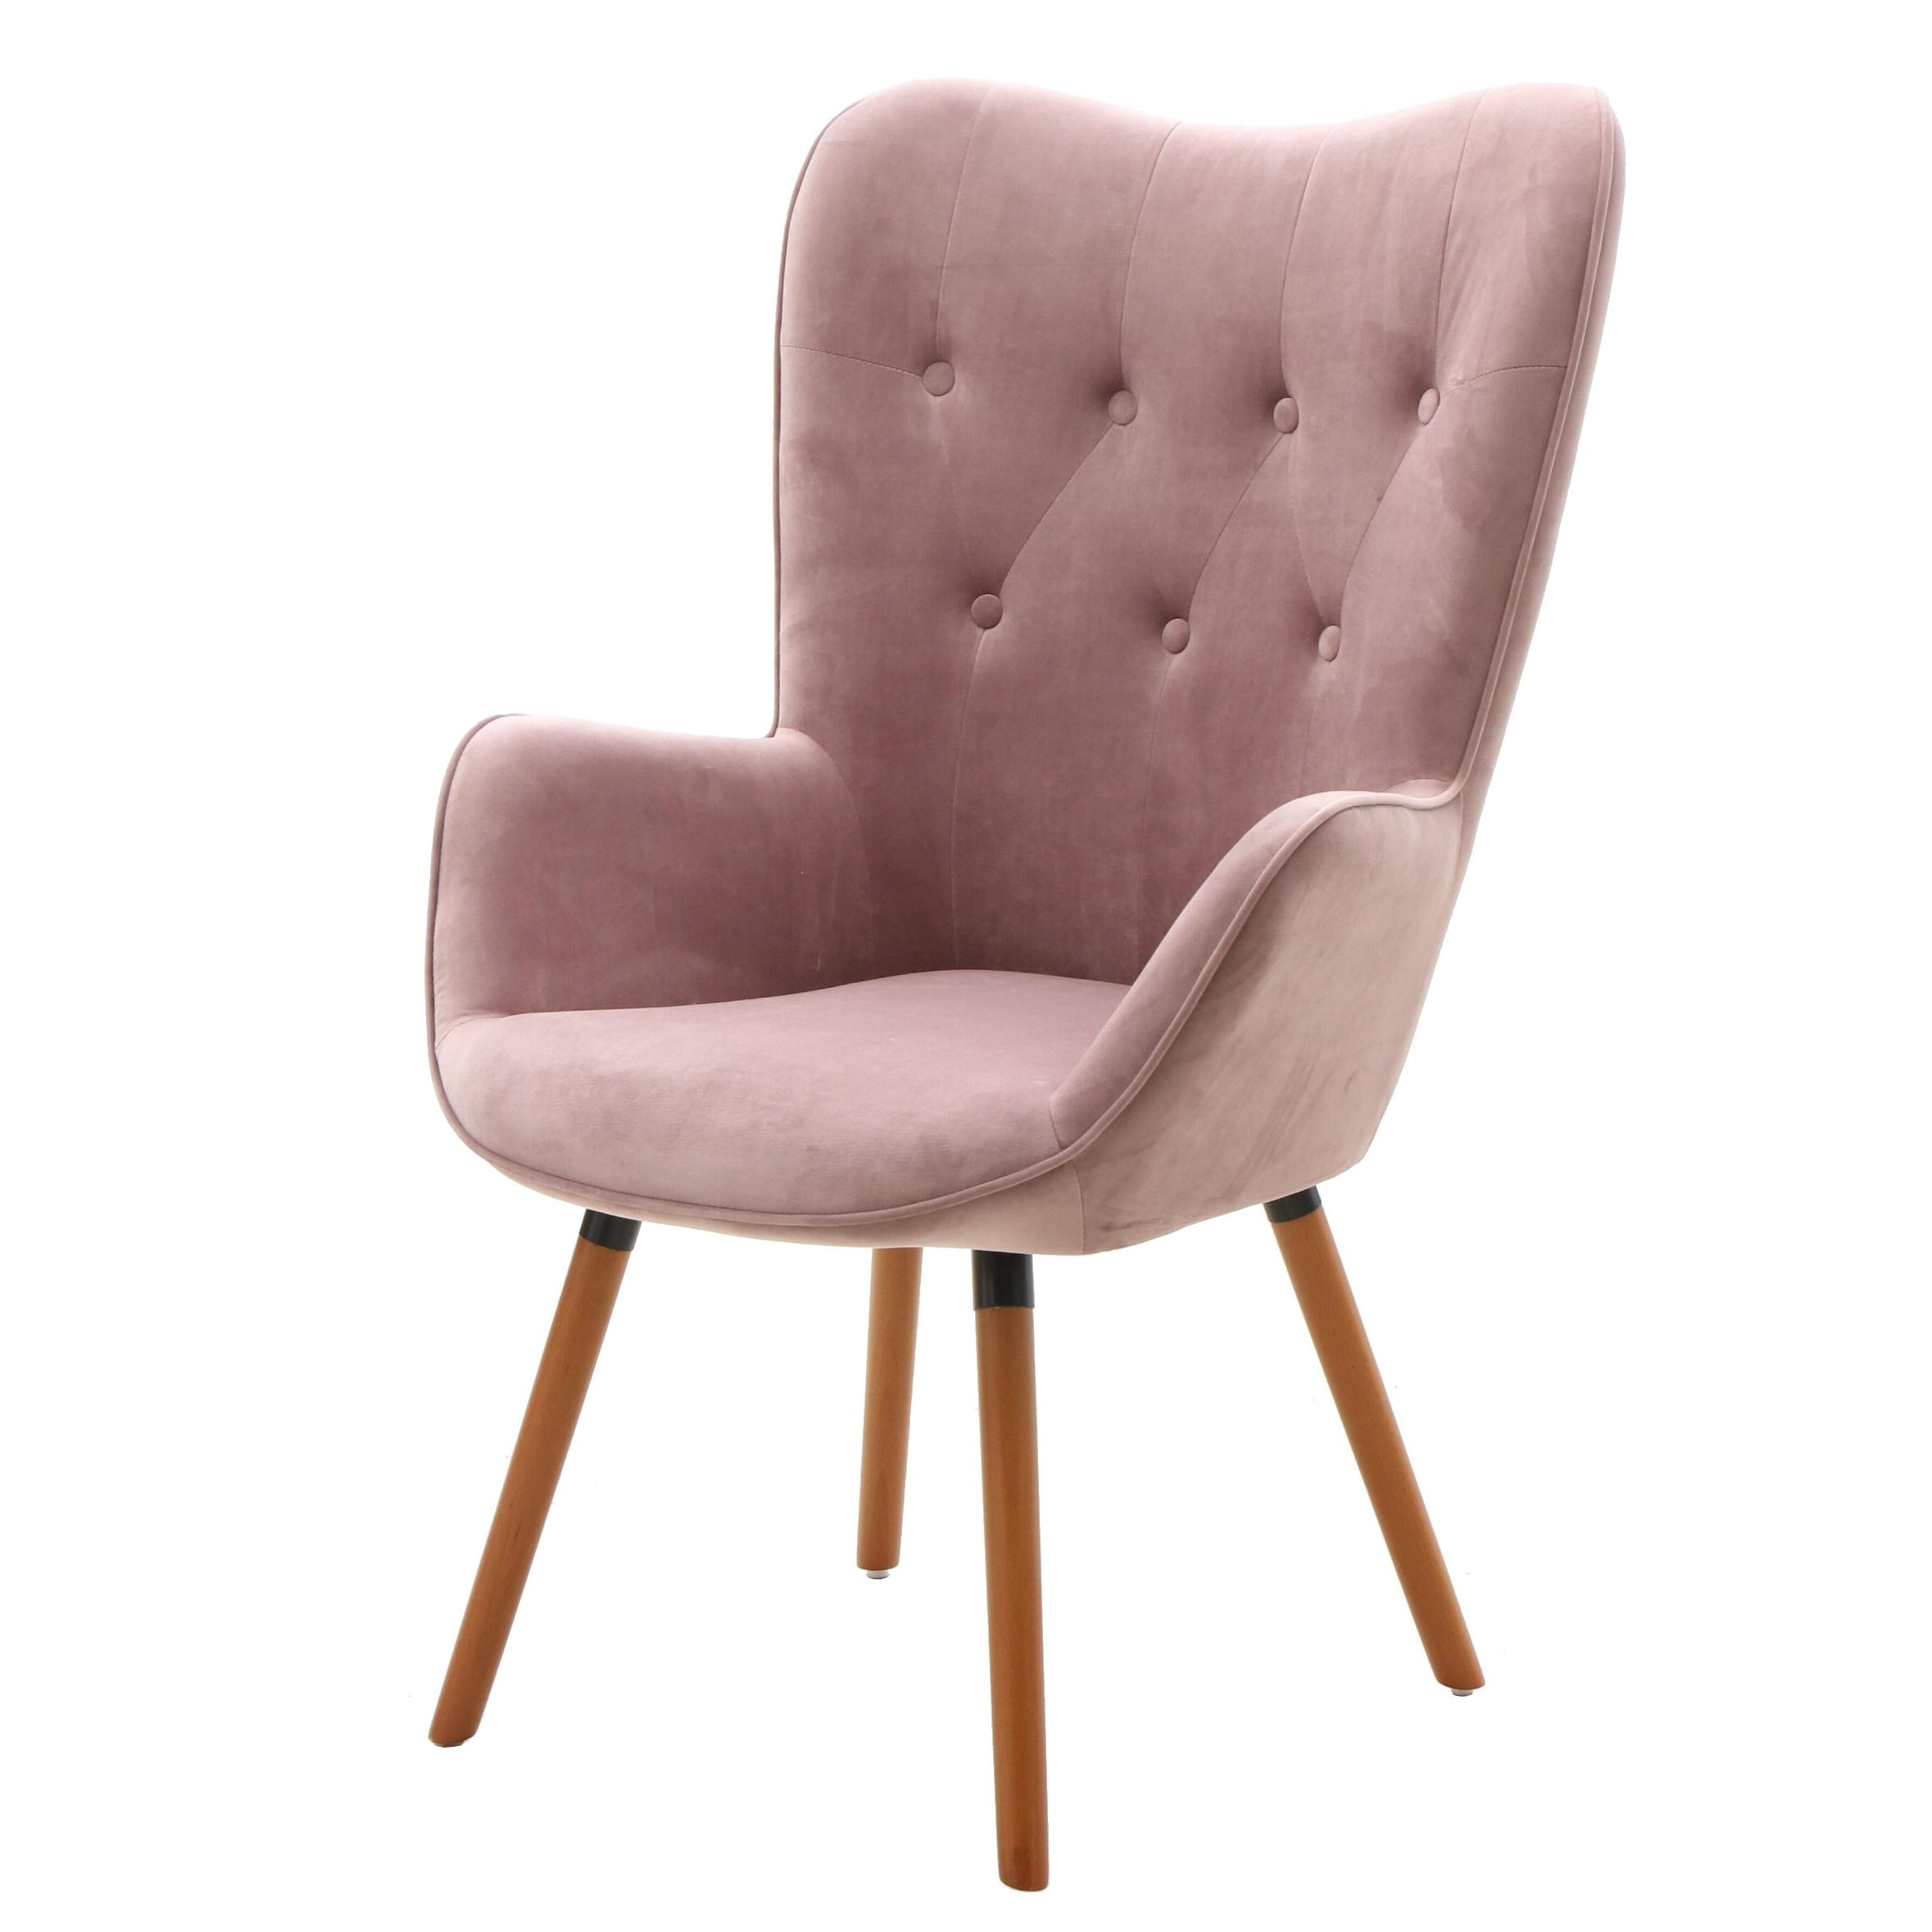 Button Tufted Upholstered Arm Chair in Lilac